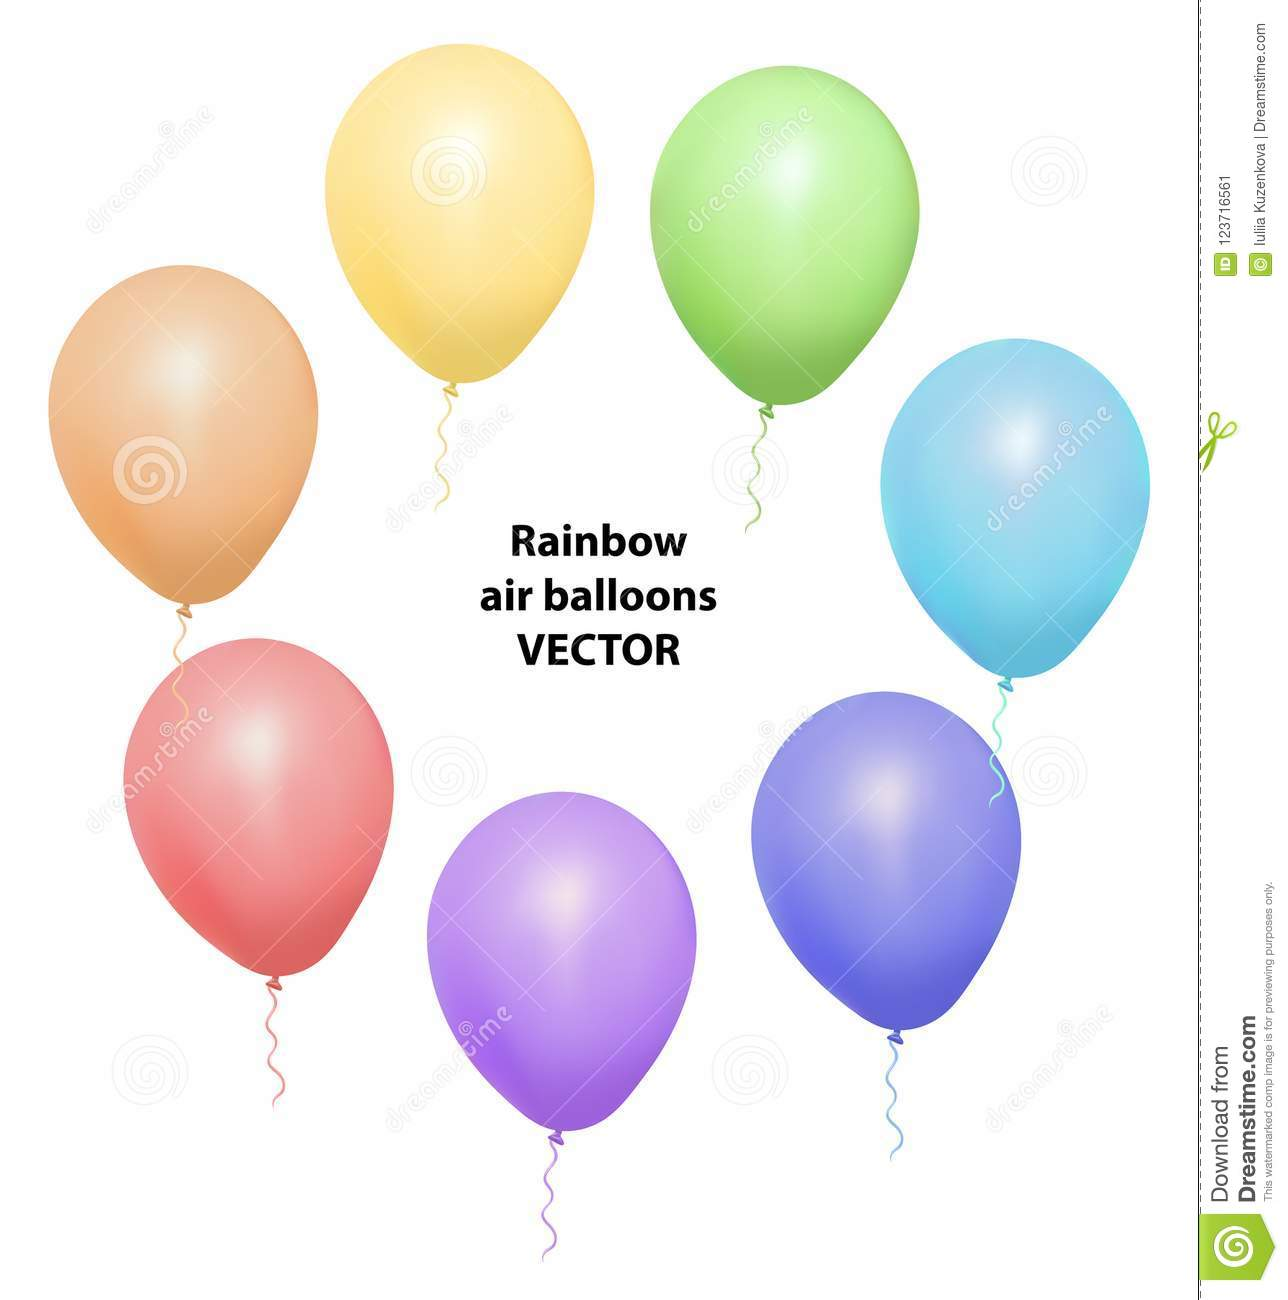 Vector set of realistic isolated balloons for celebration and decoration on the white background.